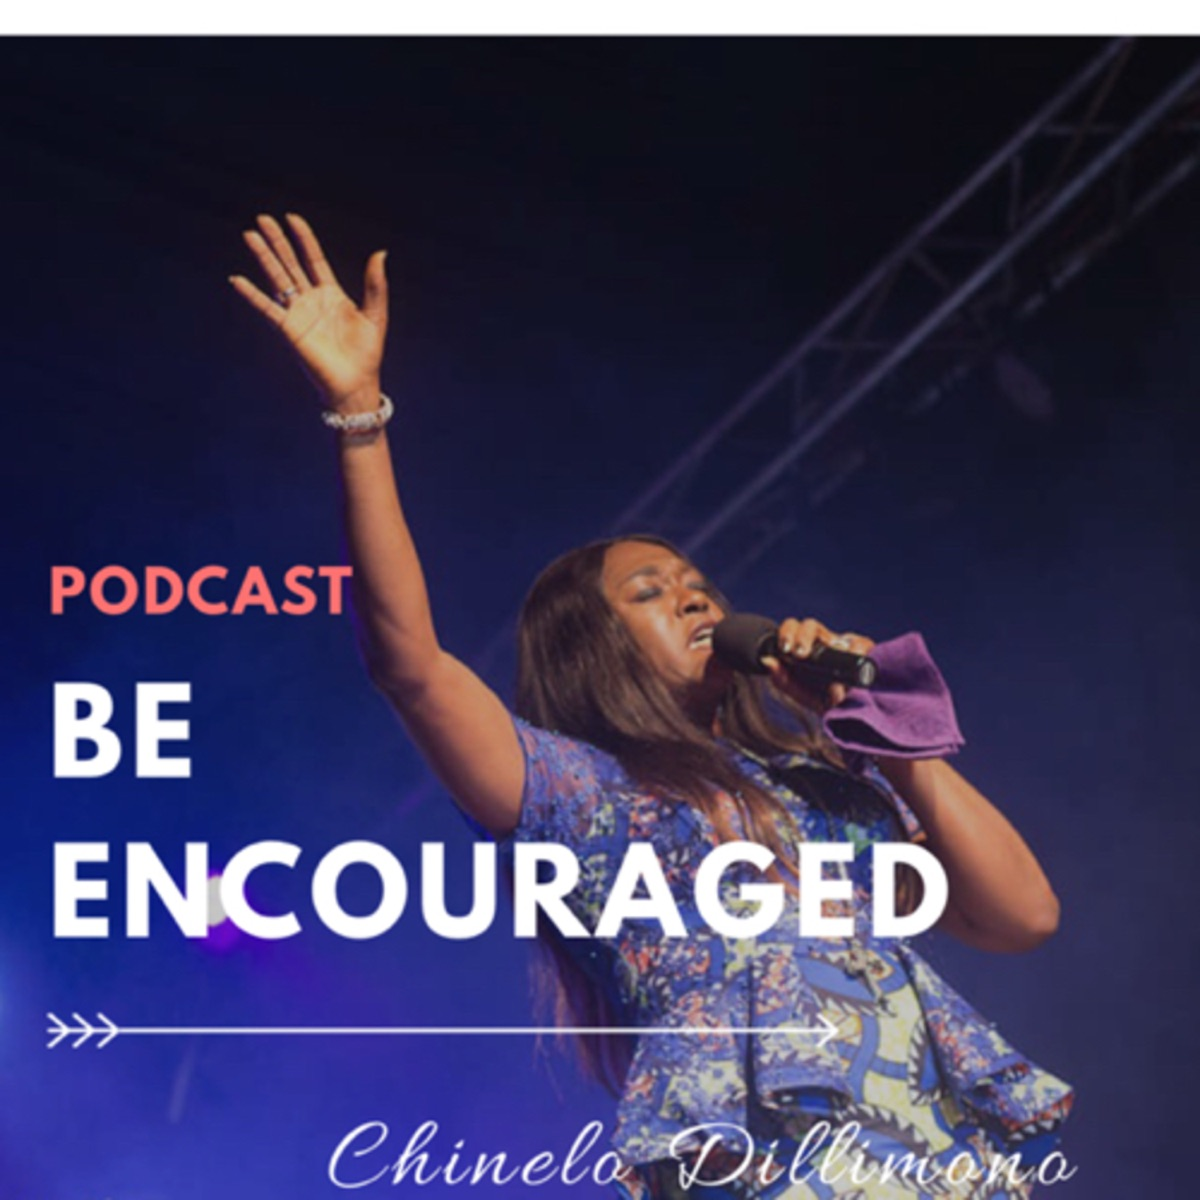 Be Encouraged with Chinelo